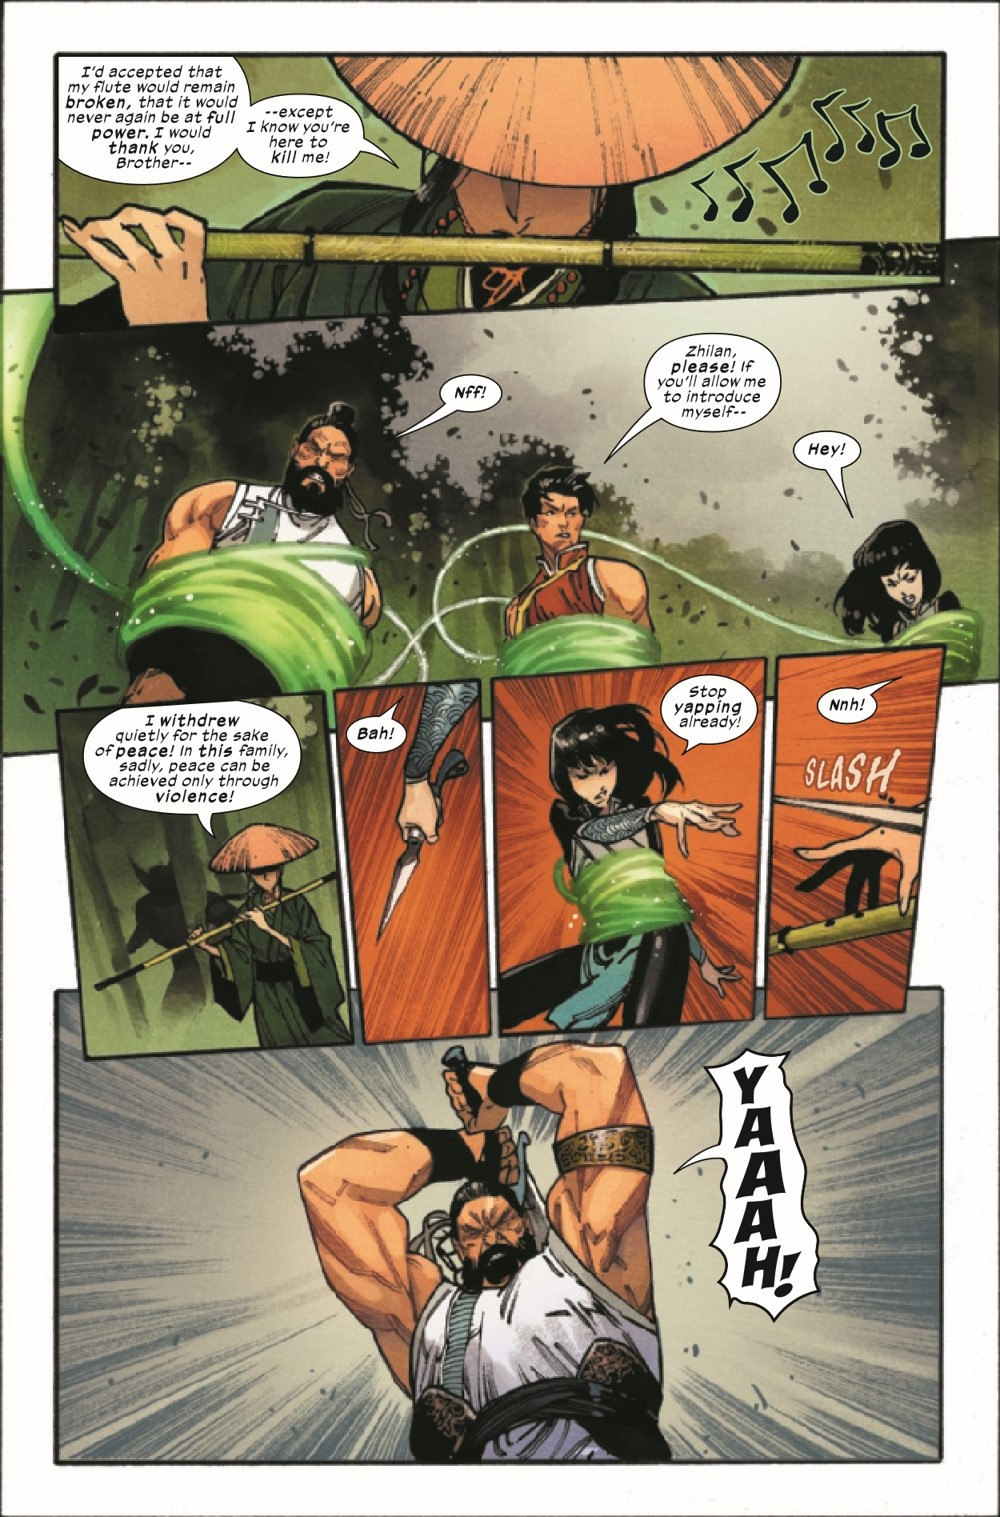 SHANGCHI2021003_Preview-5 ComicList Previews: SHANG-CHI #3